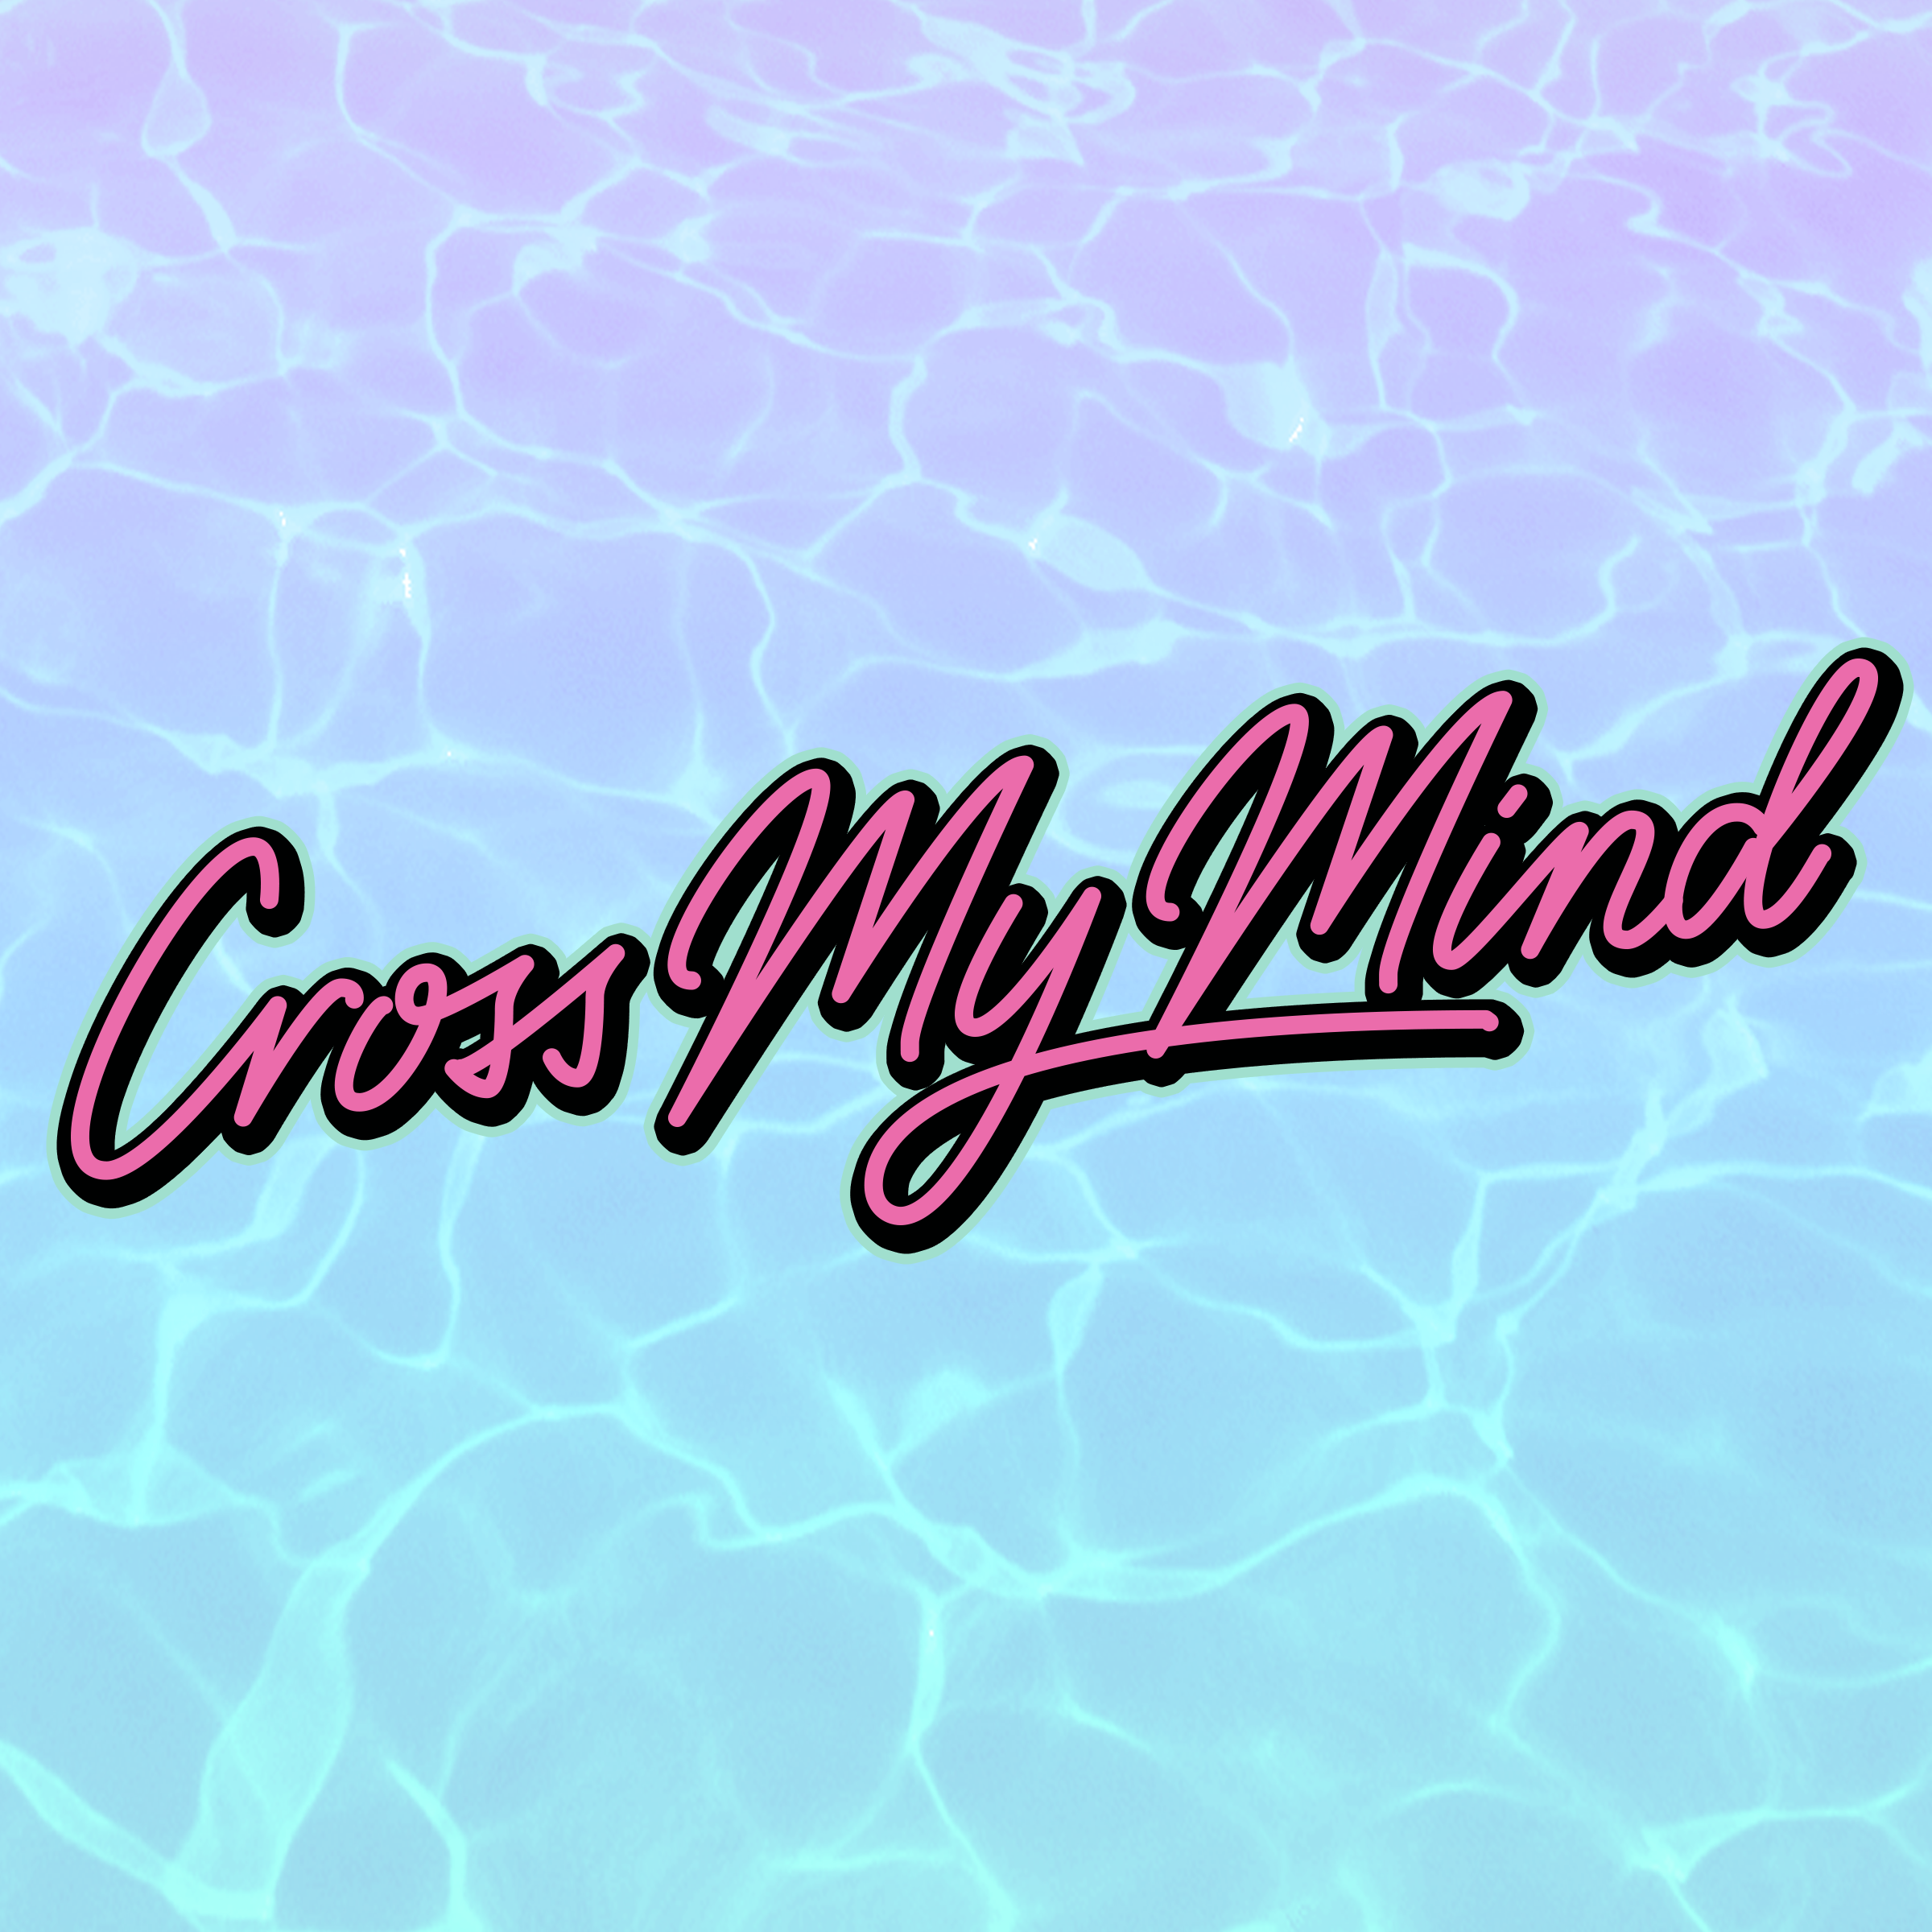 """Cross My Mind - A R I Z O N A   This week on #NewMusicMonday I'm featuring a catchy, upbeat track called """"Cross My Mind Pt. 2"""" by A R I Z O N A featuring..."""